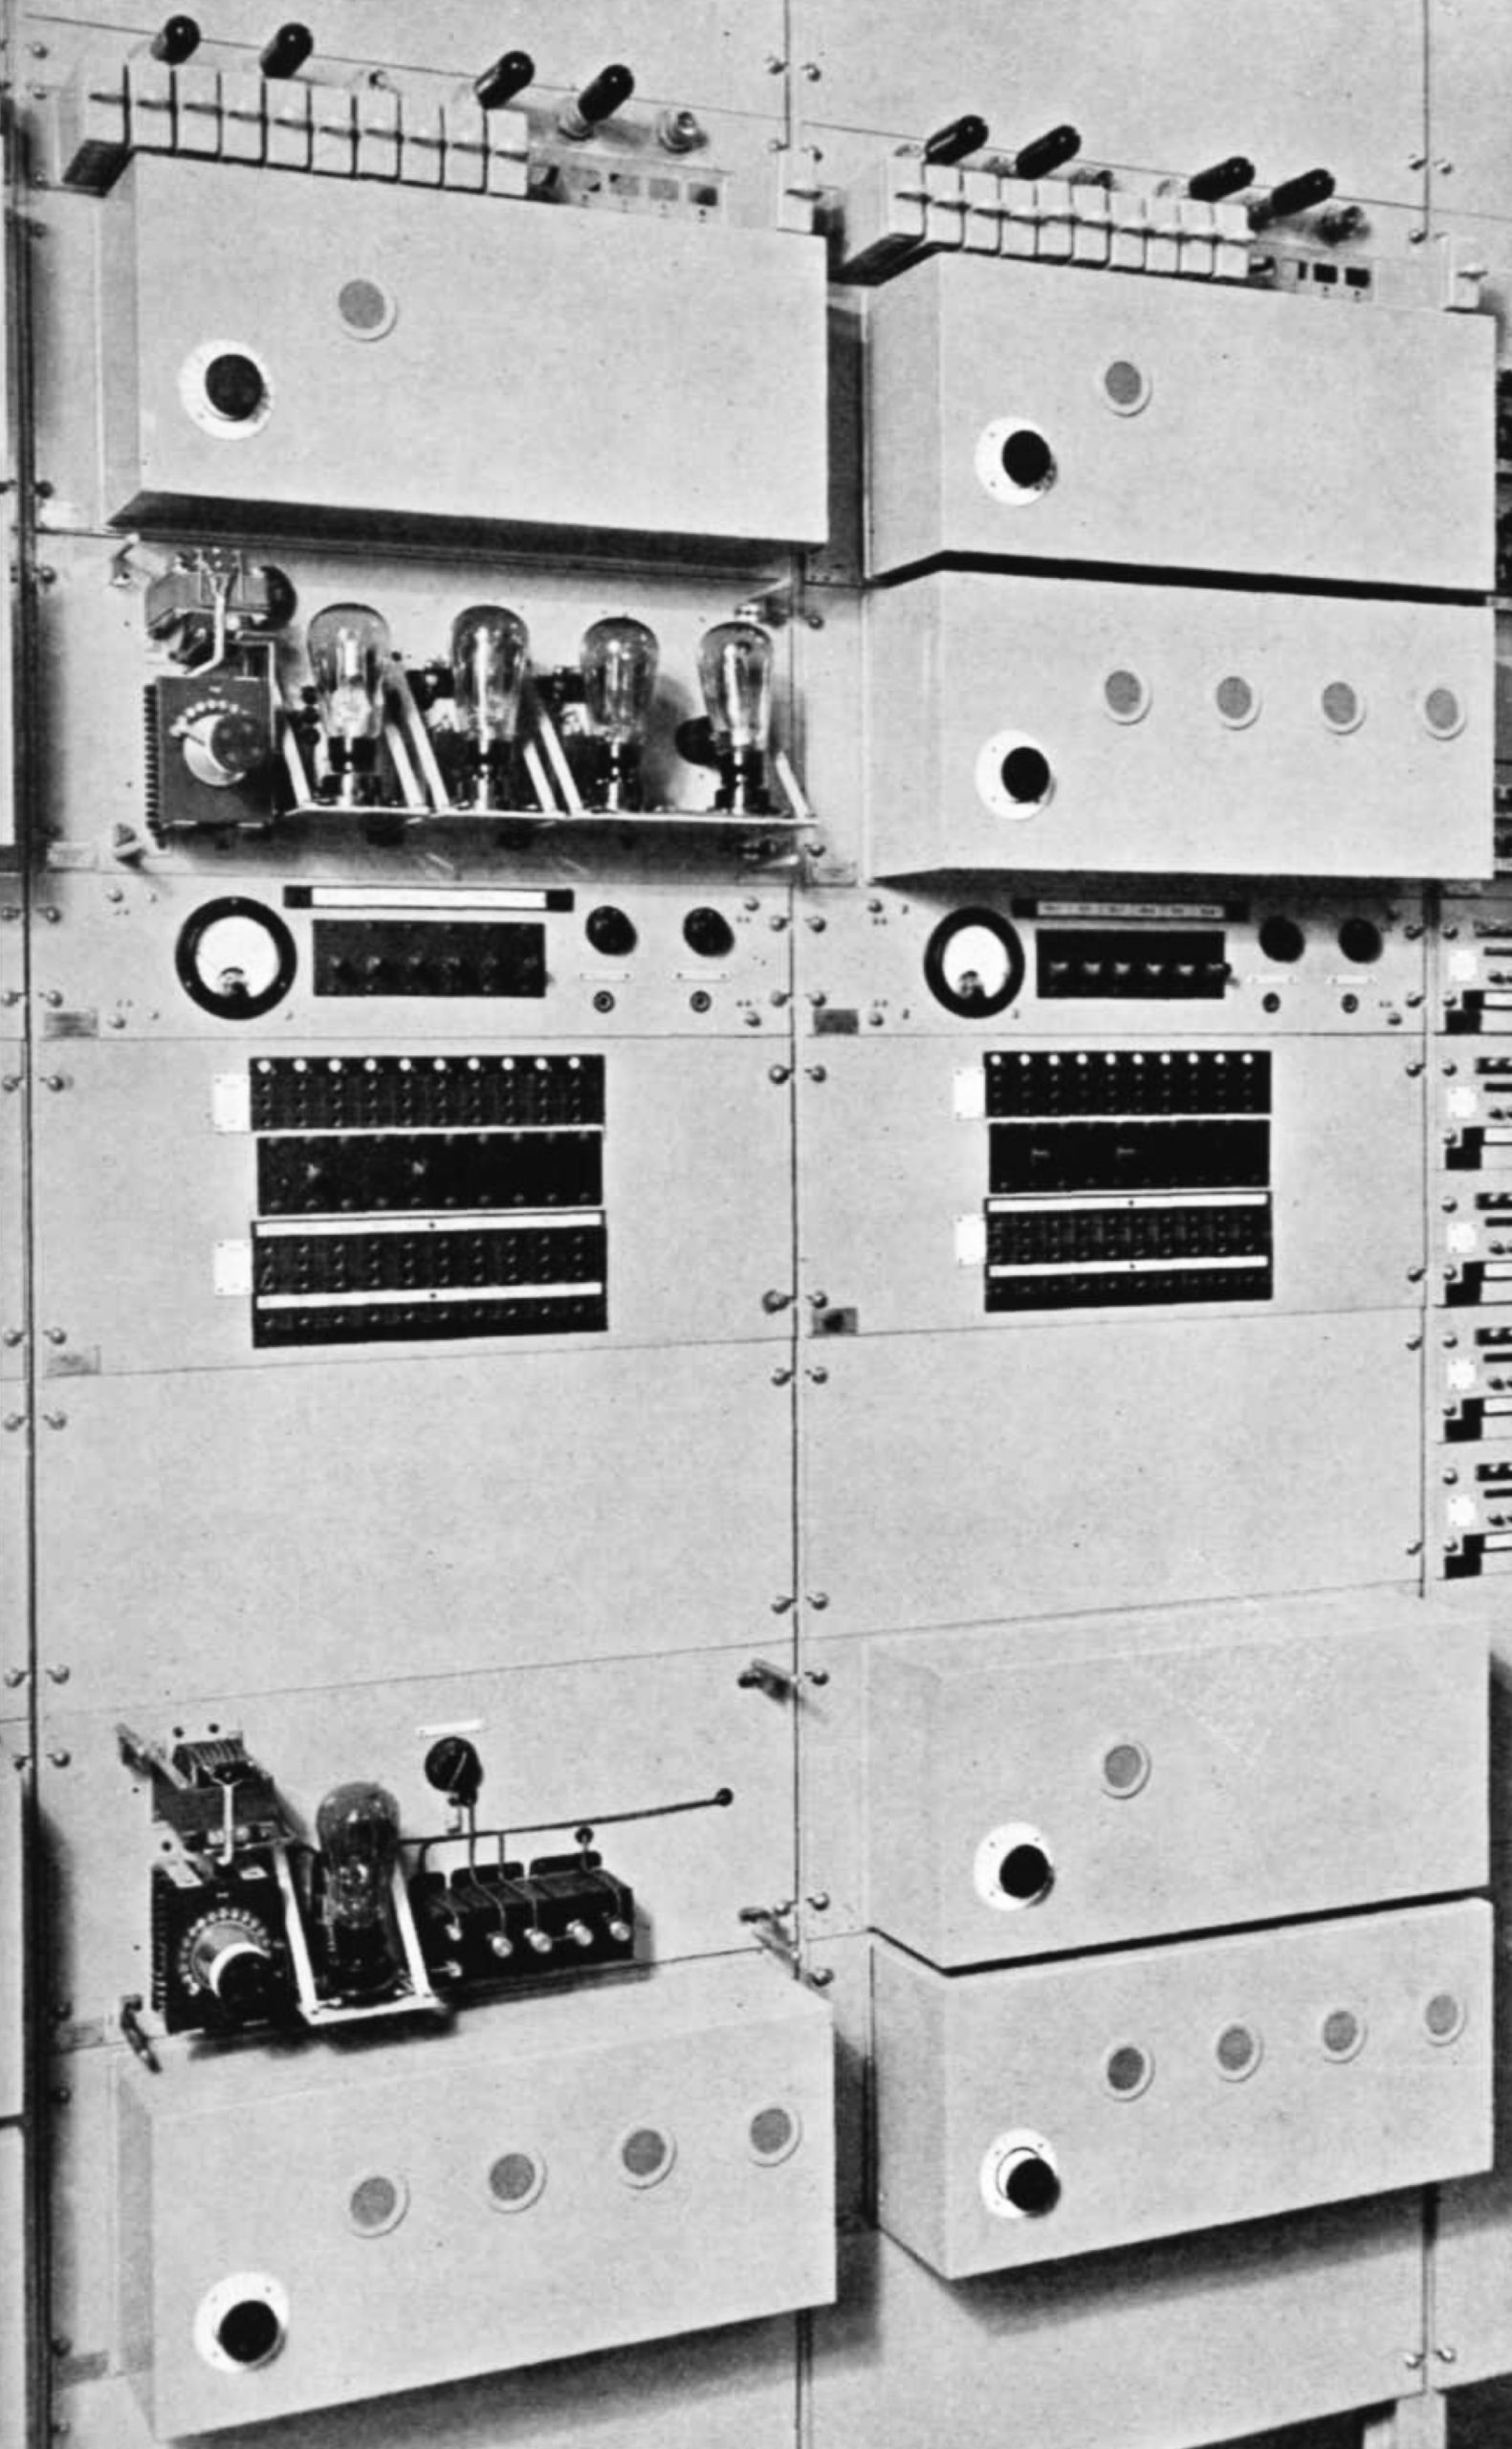 Valves, dials and control knobs on a vertical bank of equipment